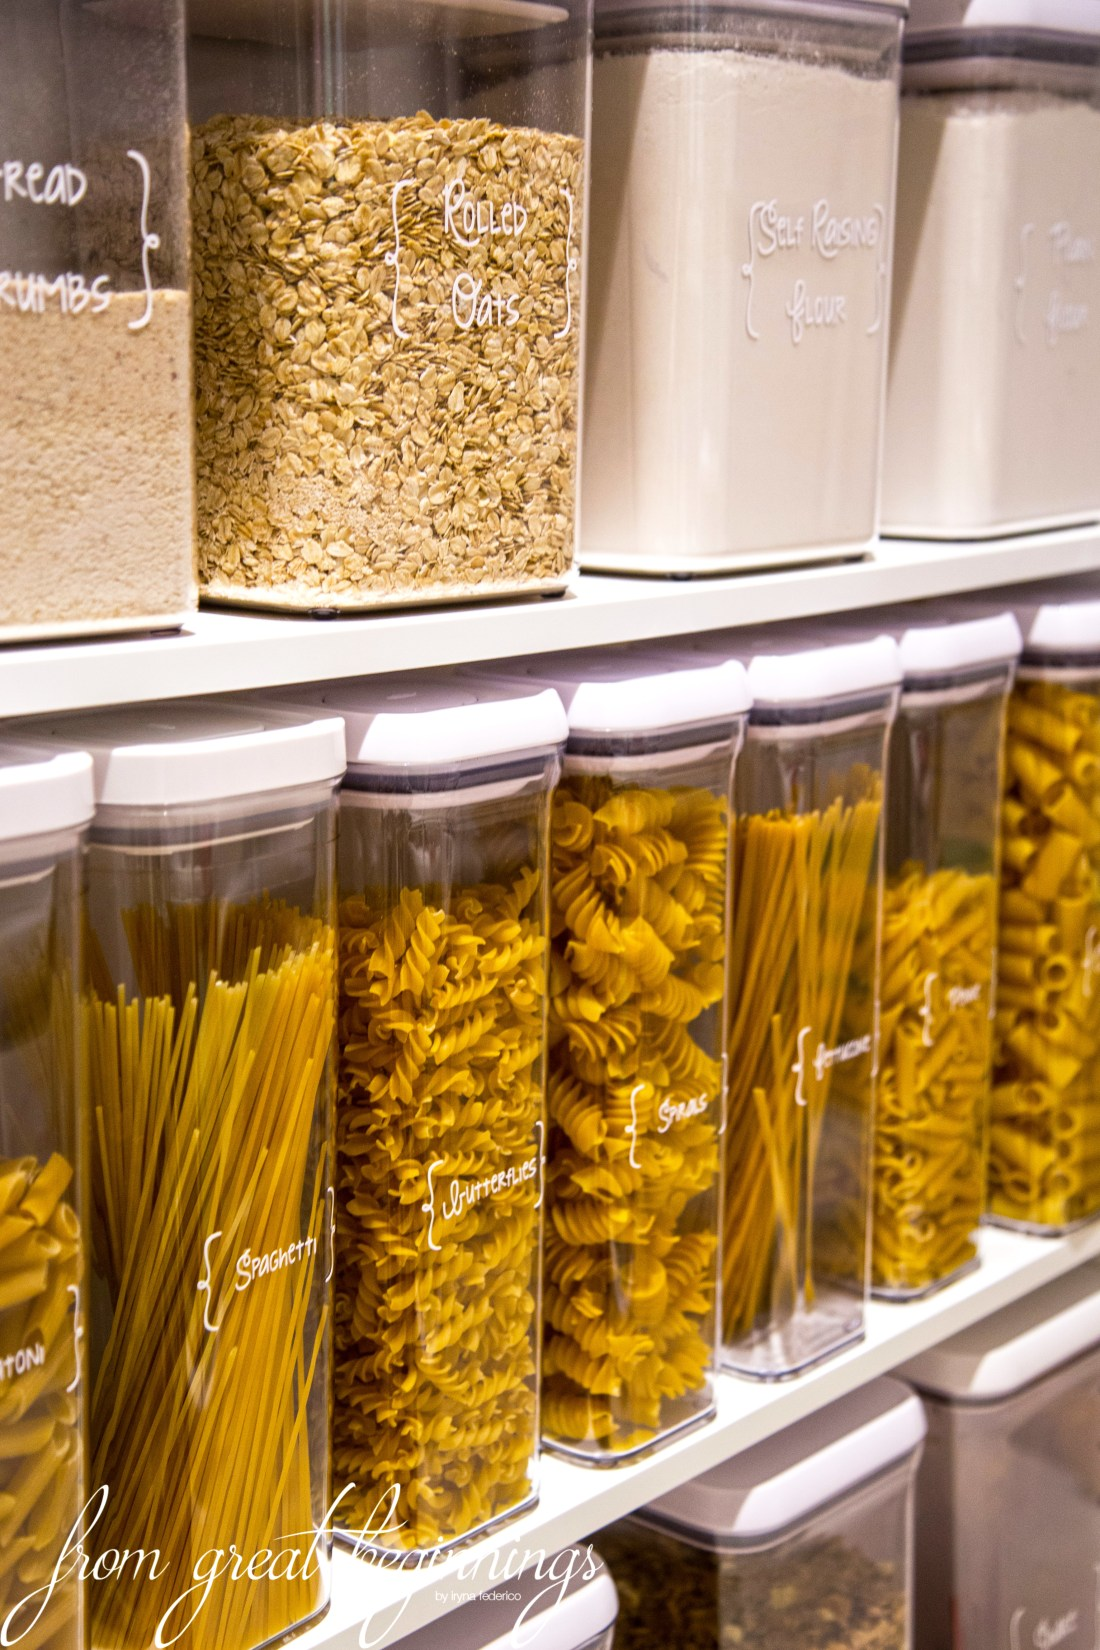 Storing dry goods in your pantry - www.fromgreatbeginnings.com